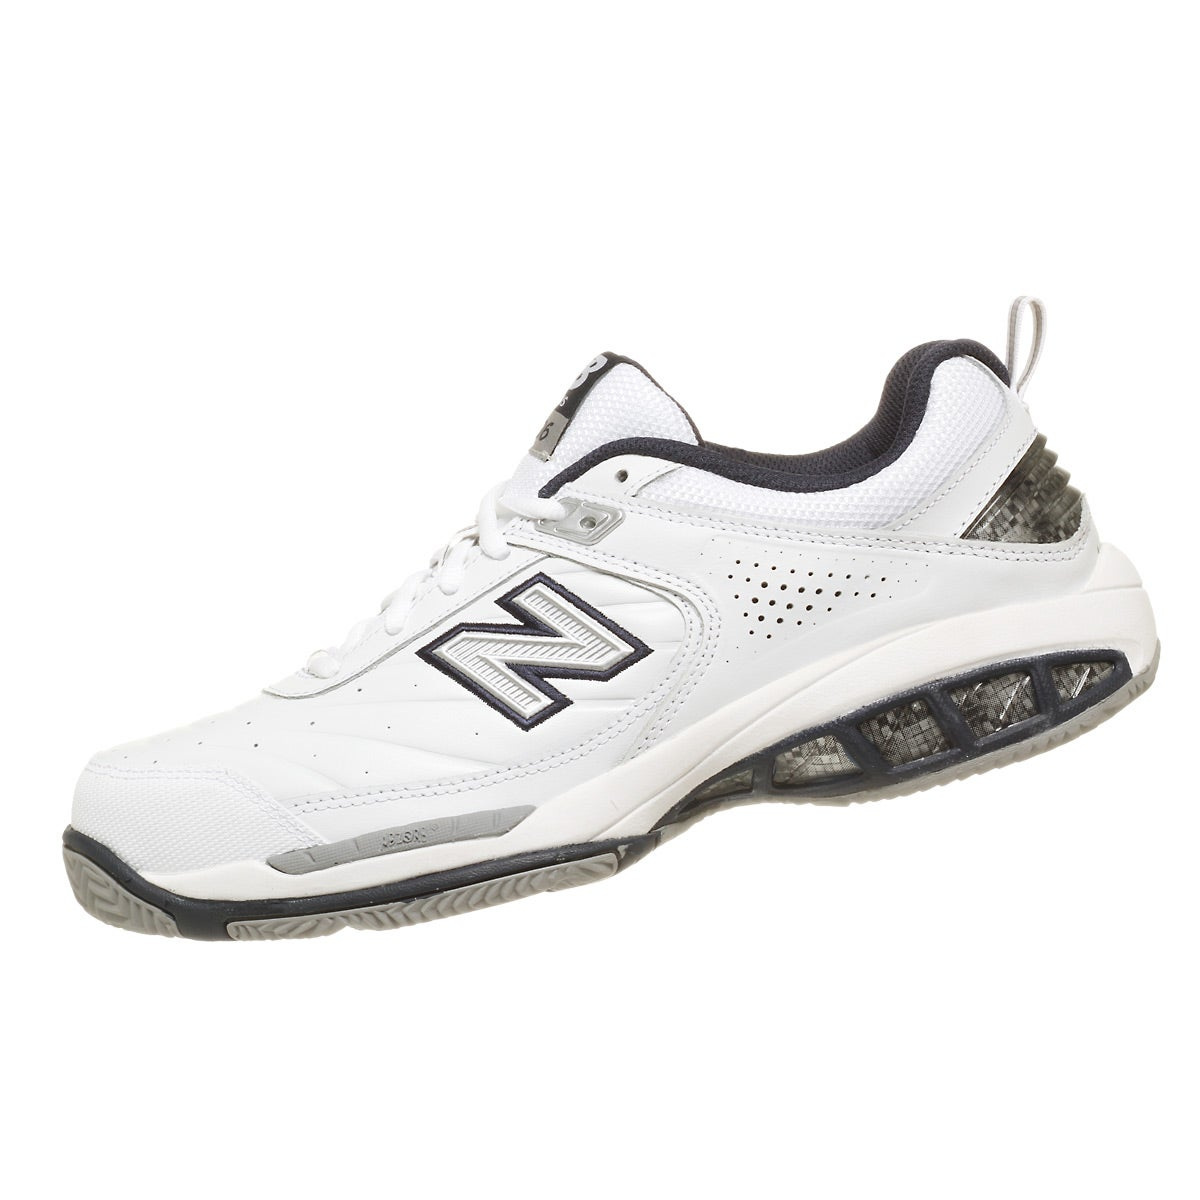 New Balance MC 806 W D Men's Shoes 360° View